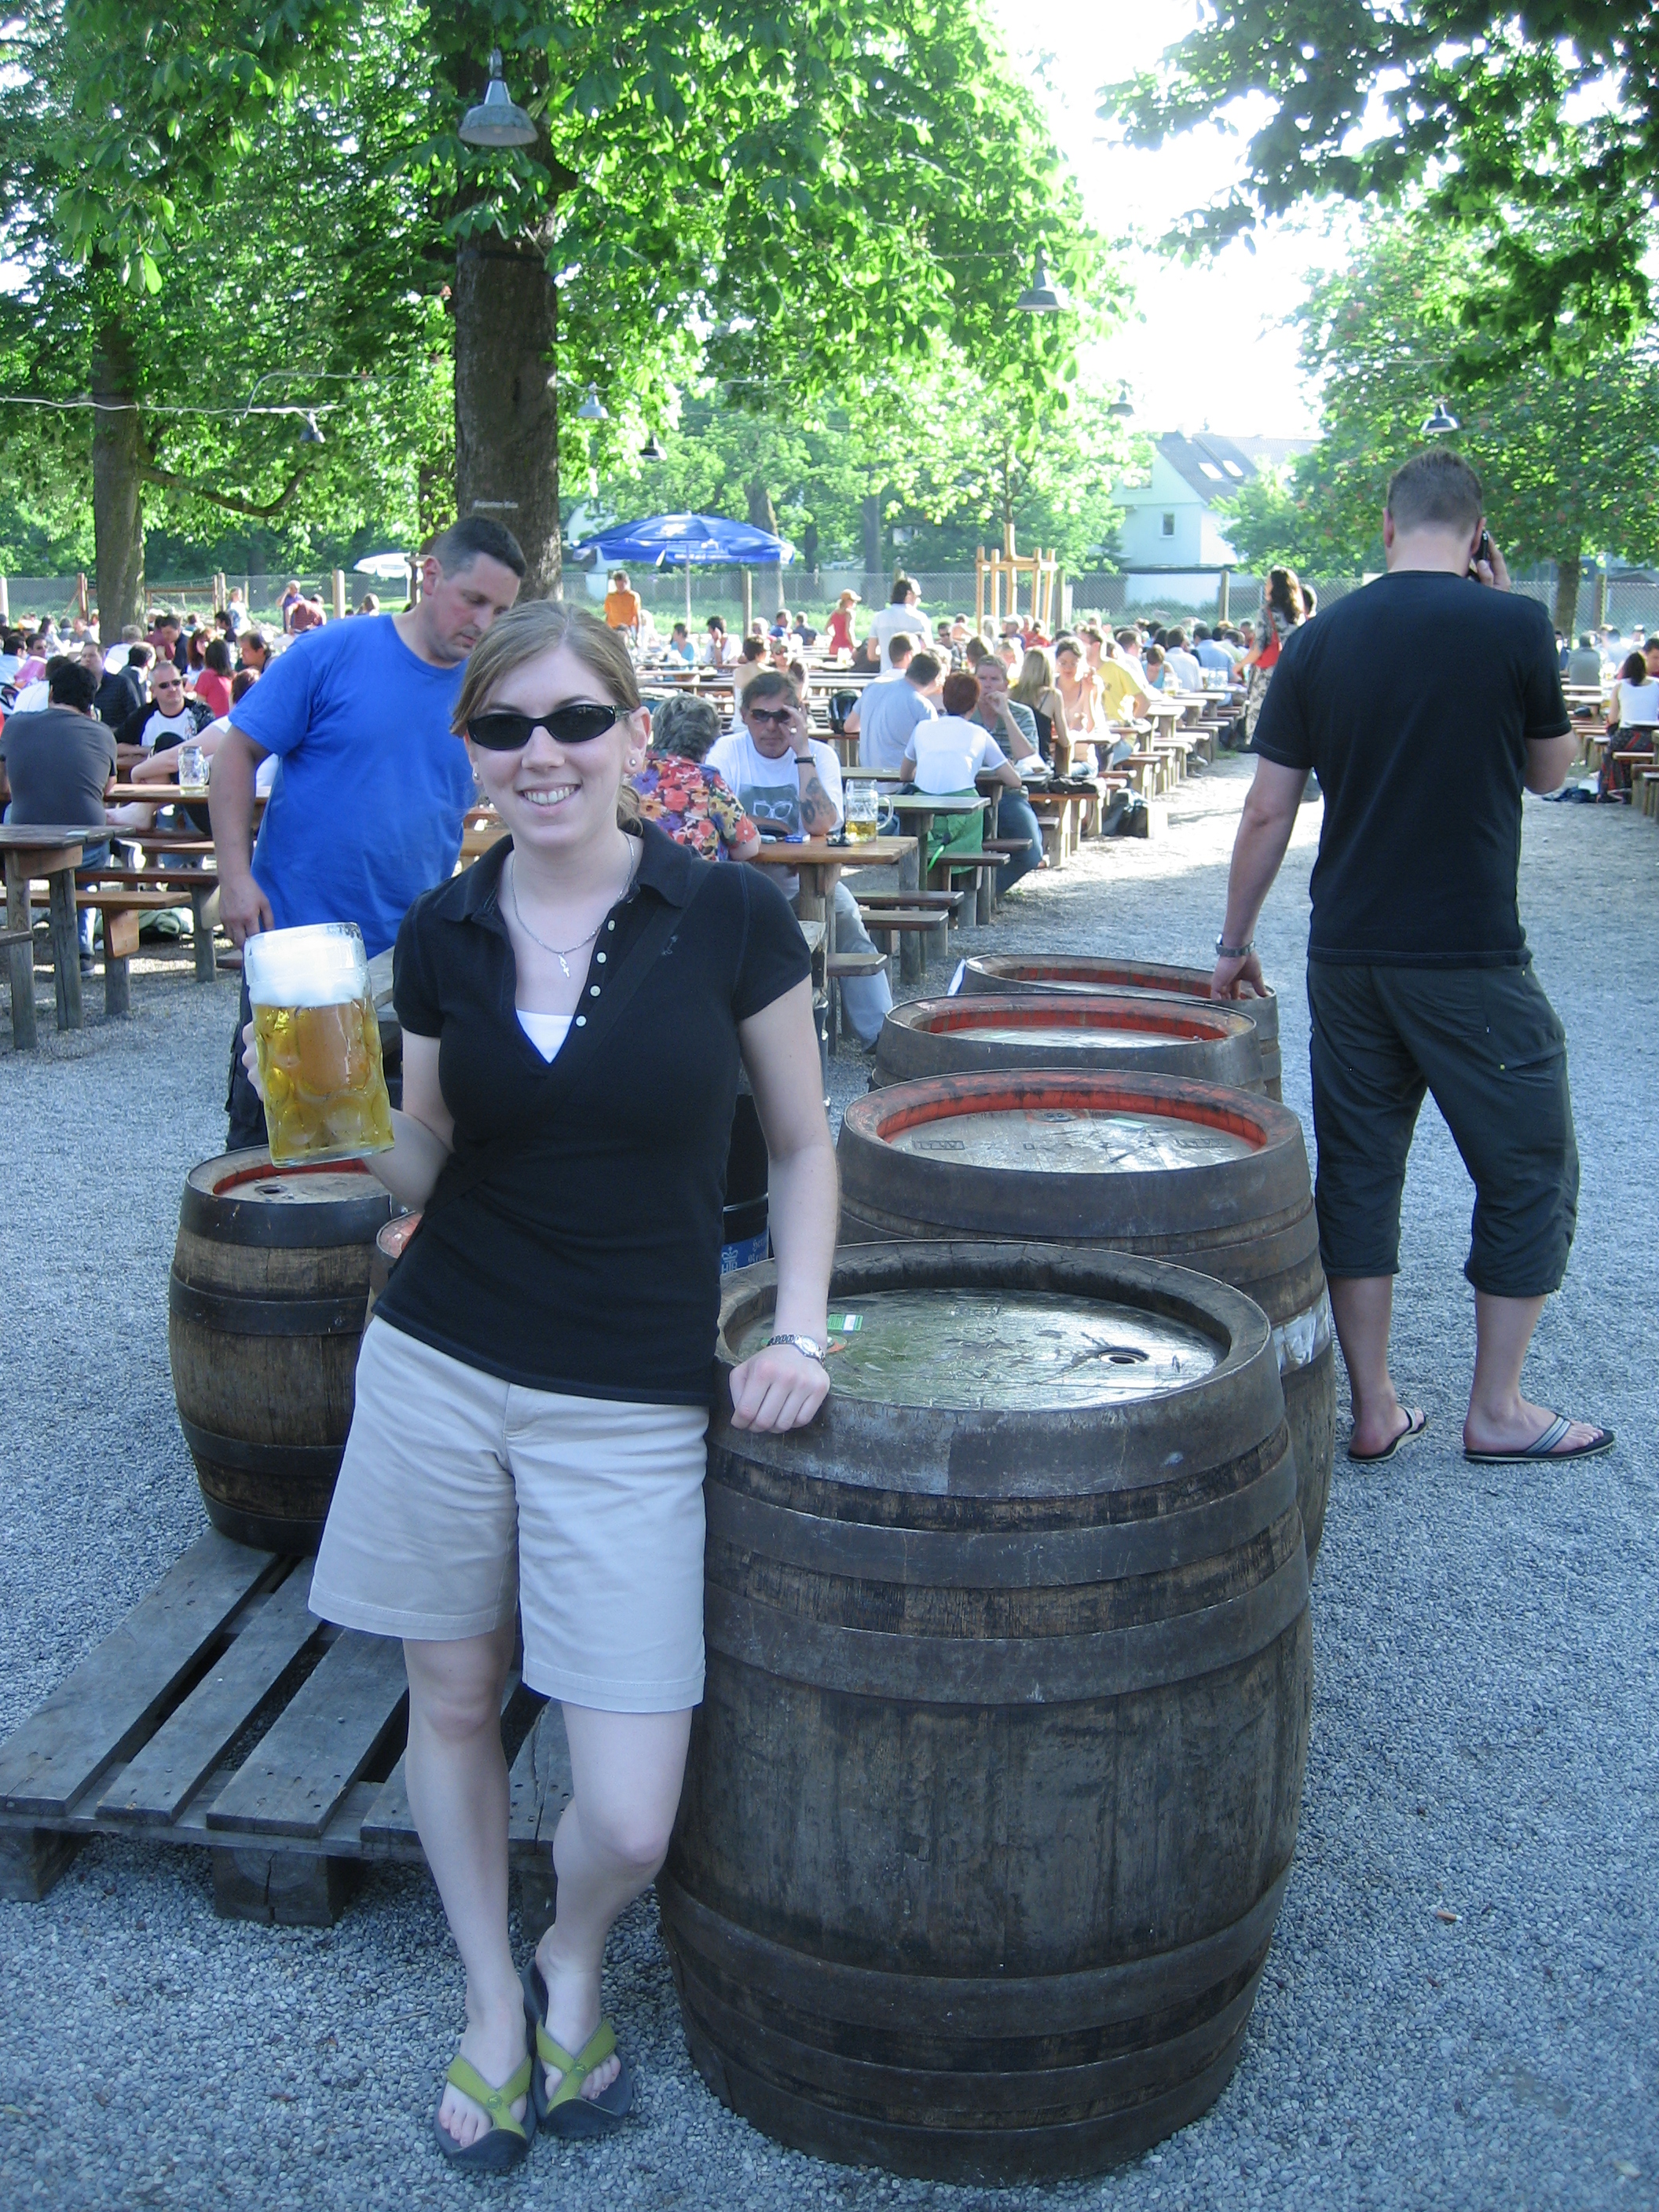 #Throwback to our first visit to Germany in 2009!